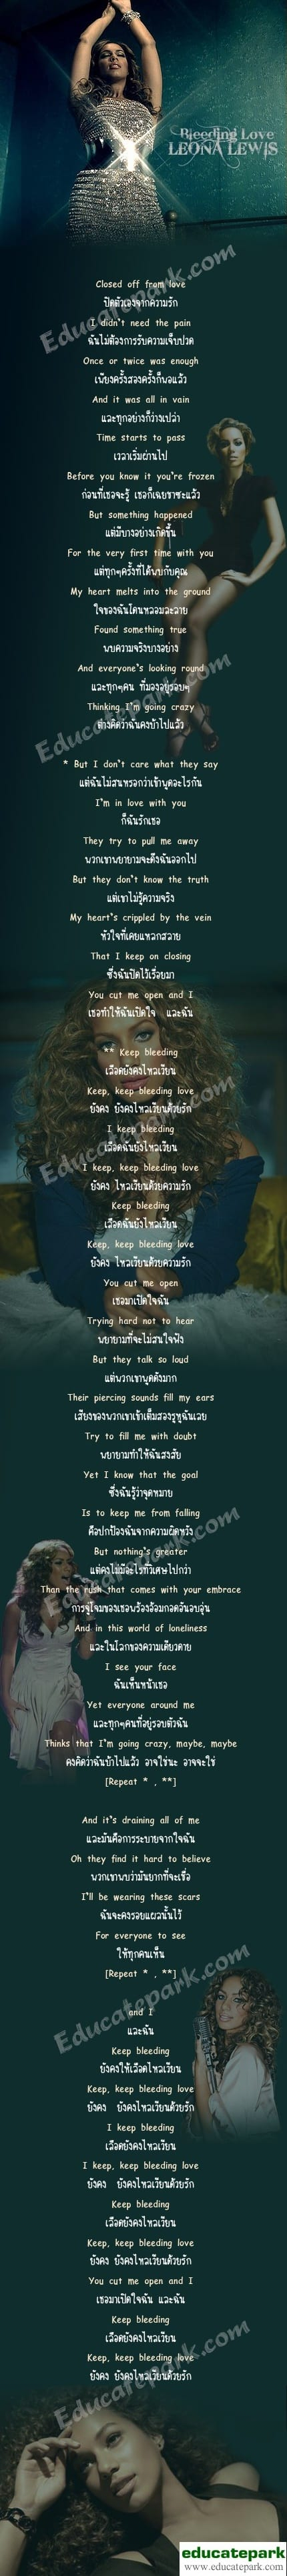 แปลเพลง Bleeding Love - Leona Lewis